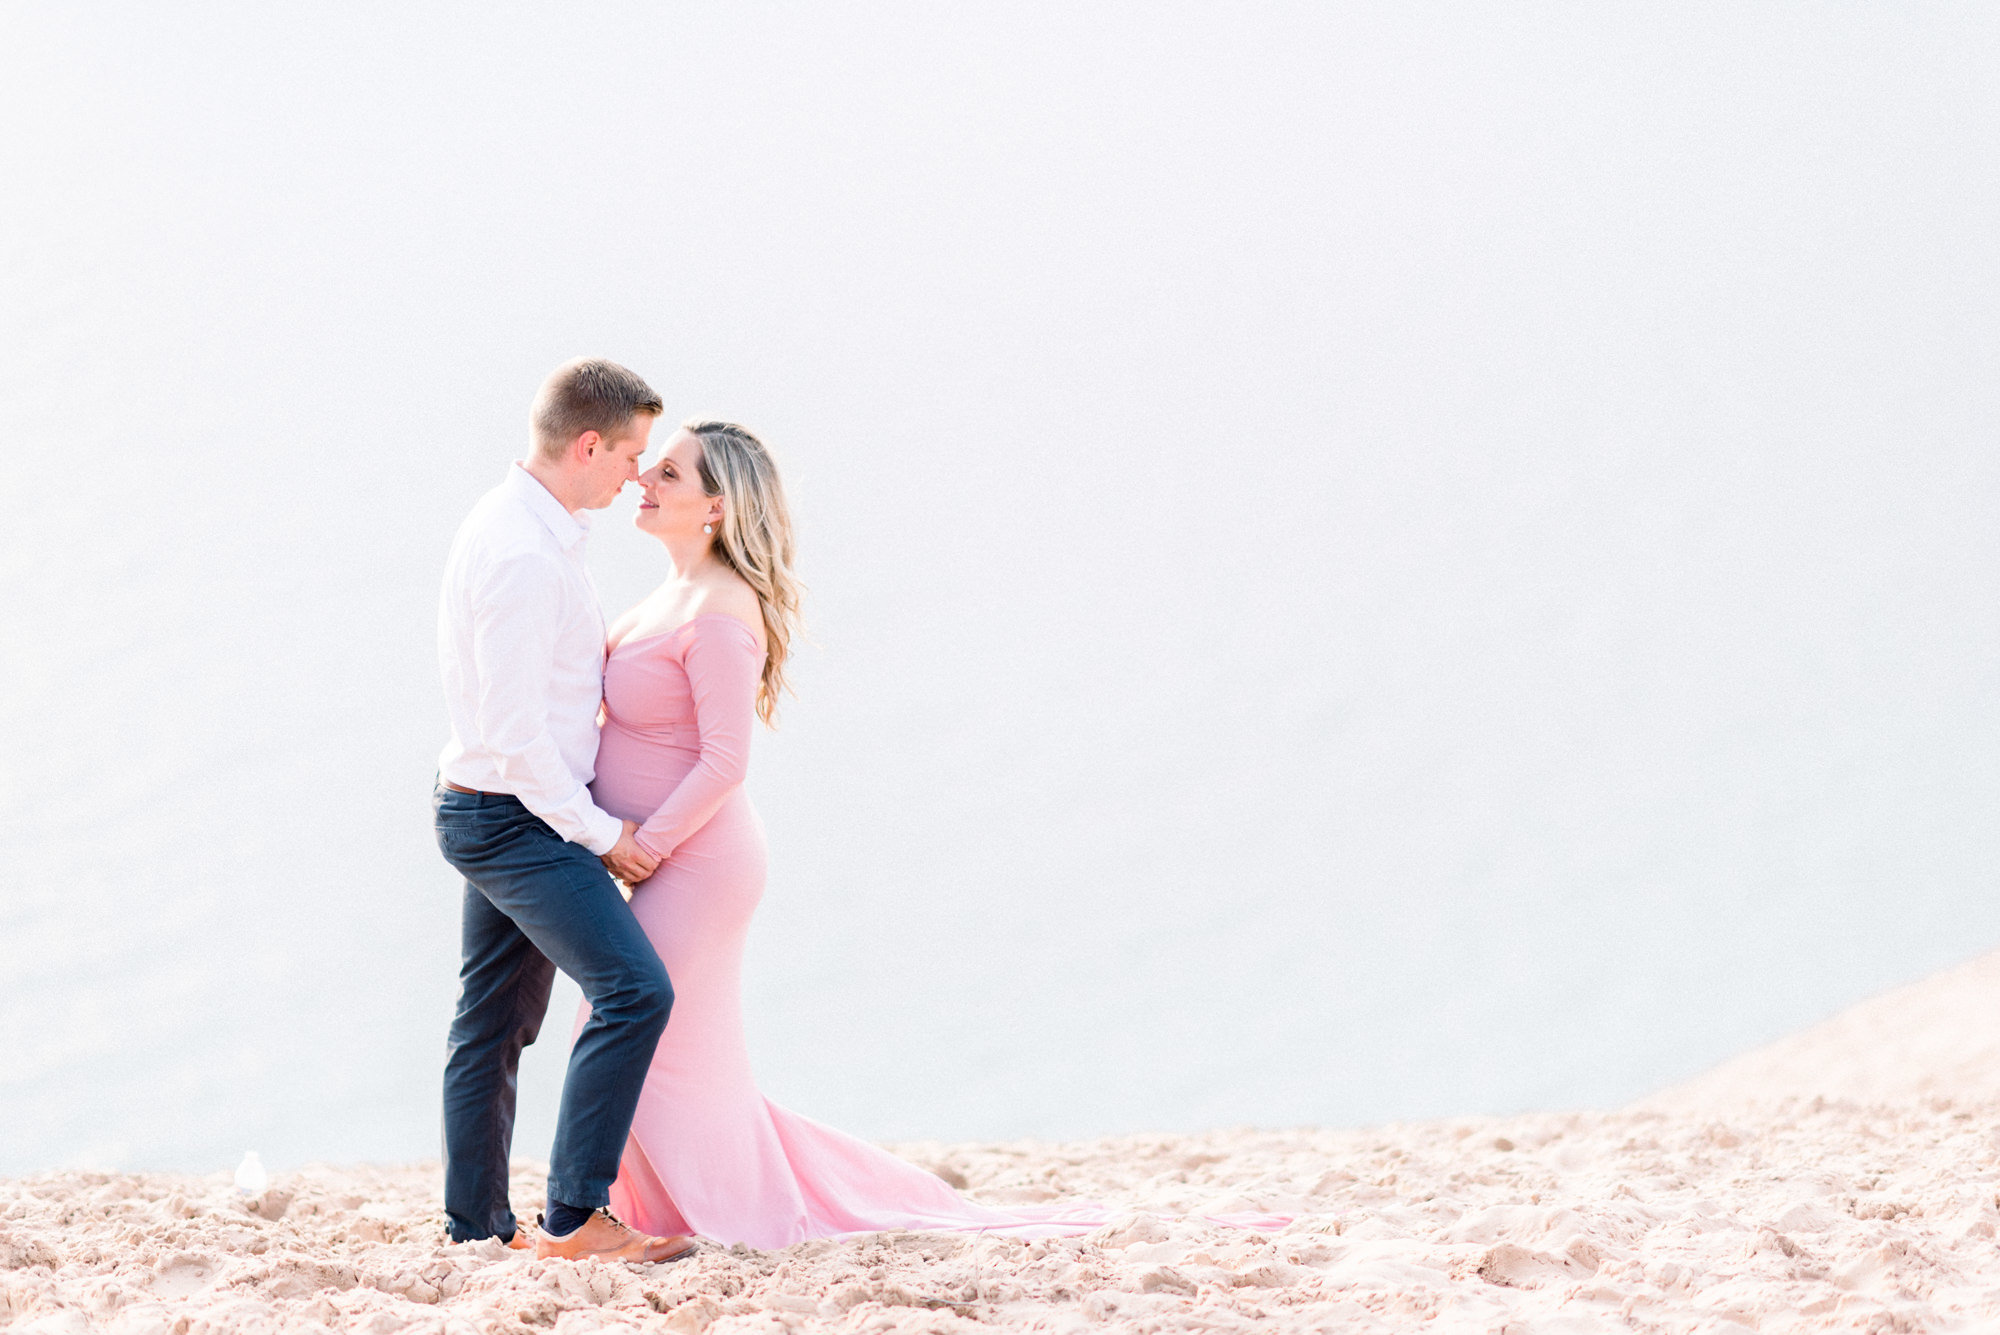 traverse-city-michigan-maternity-photography-2